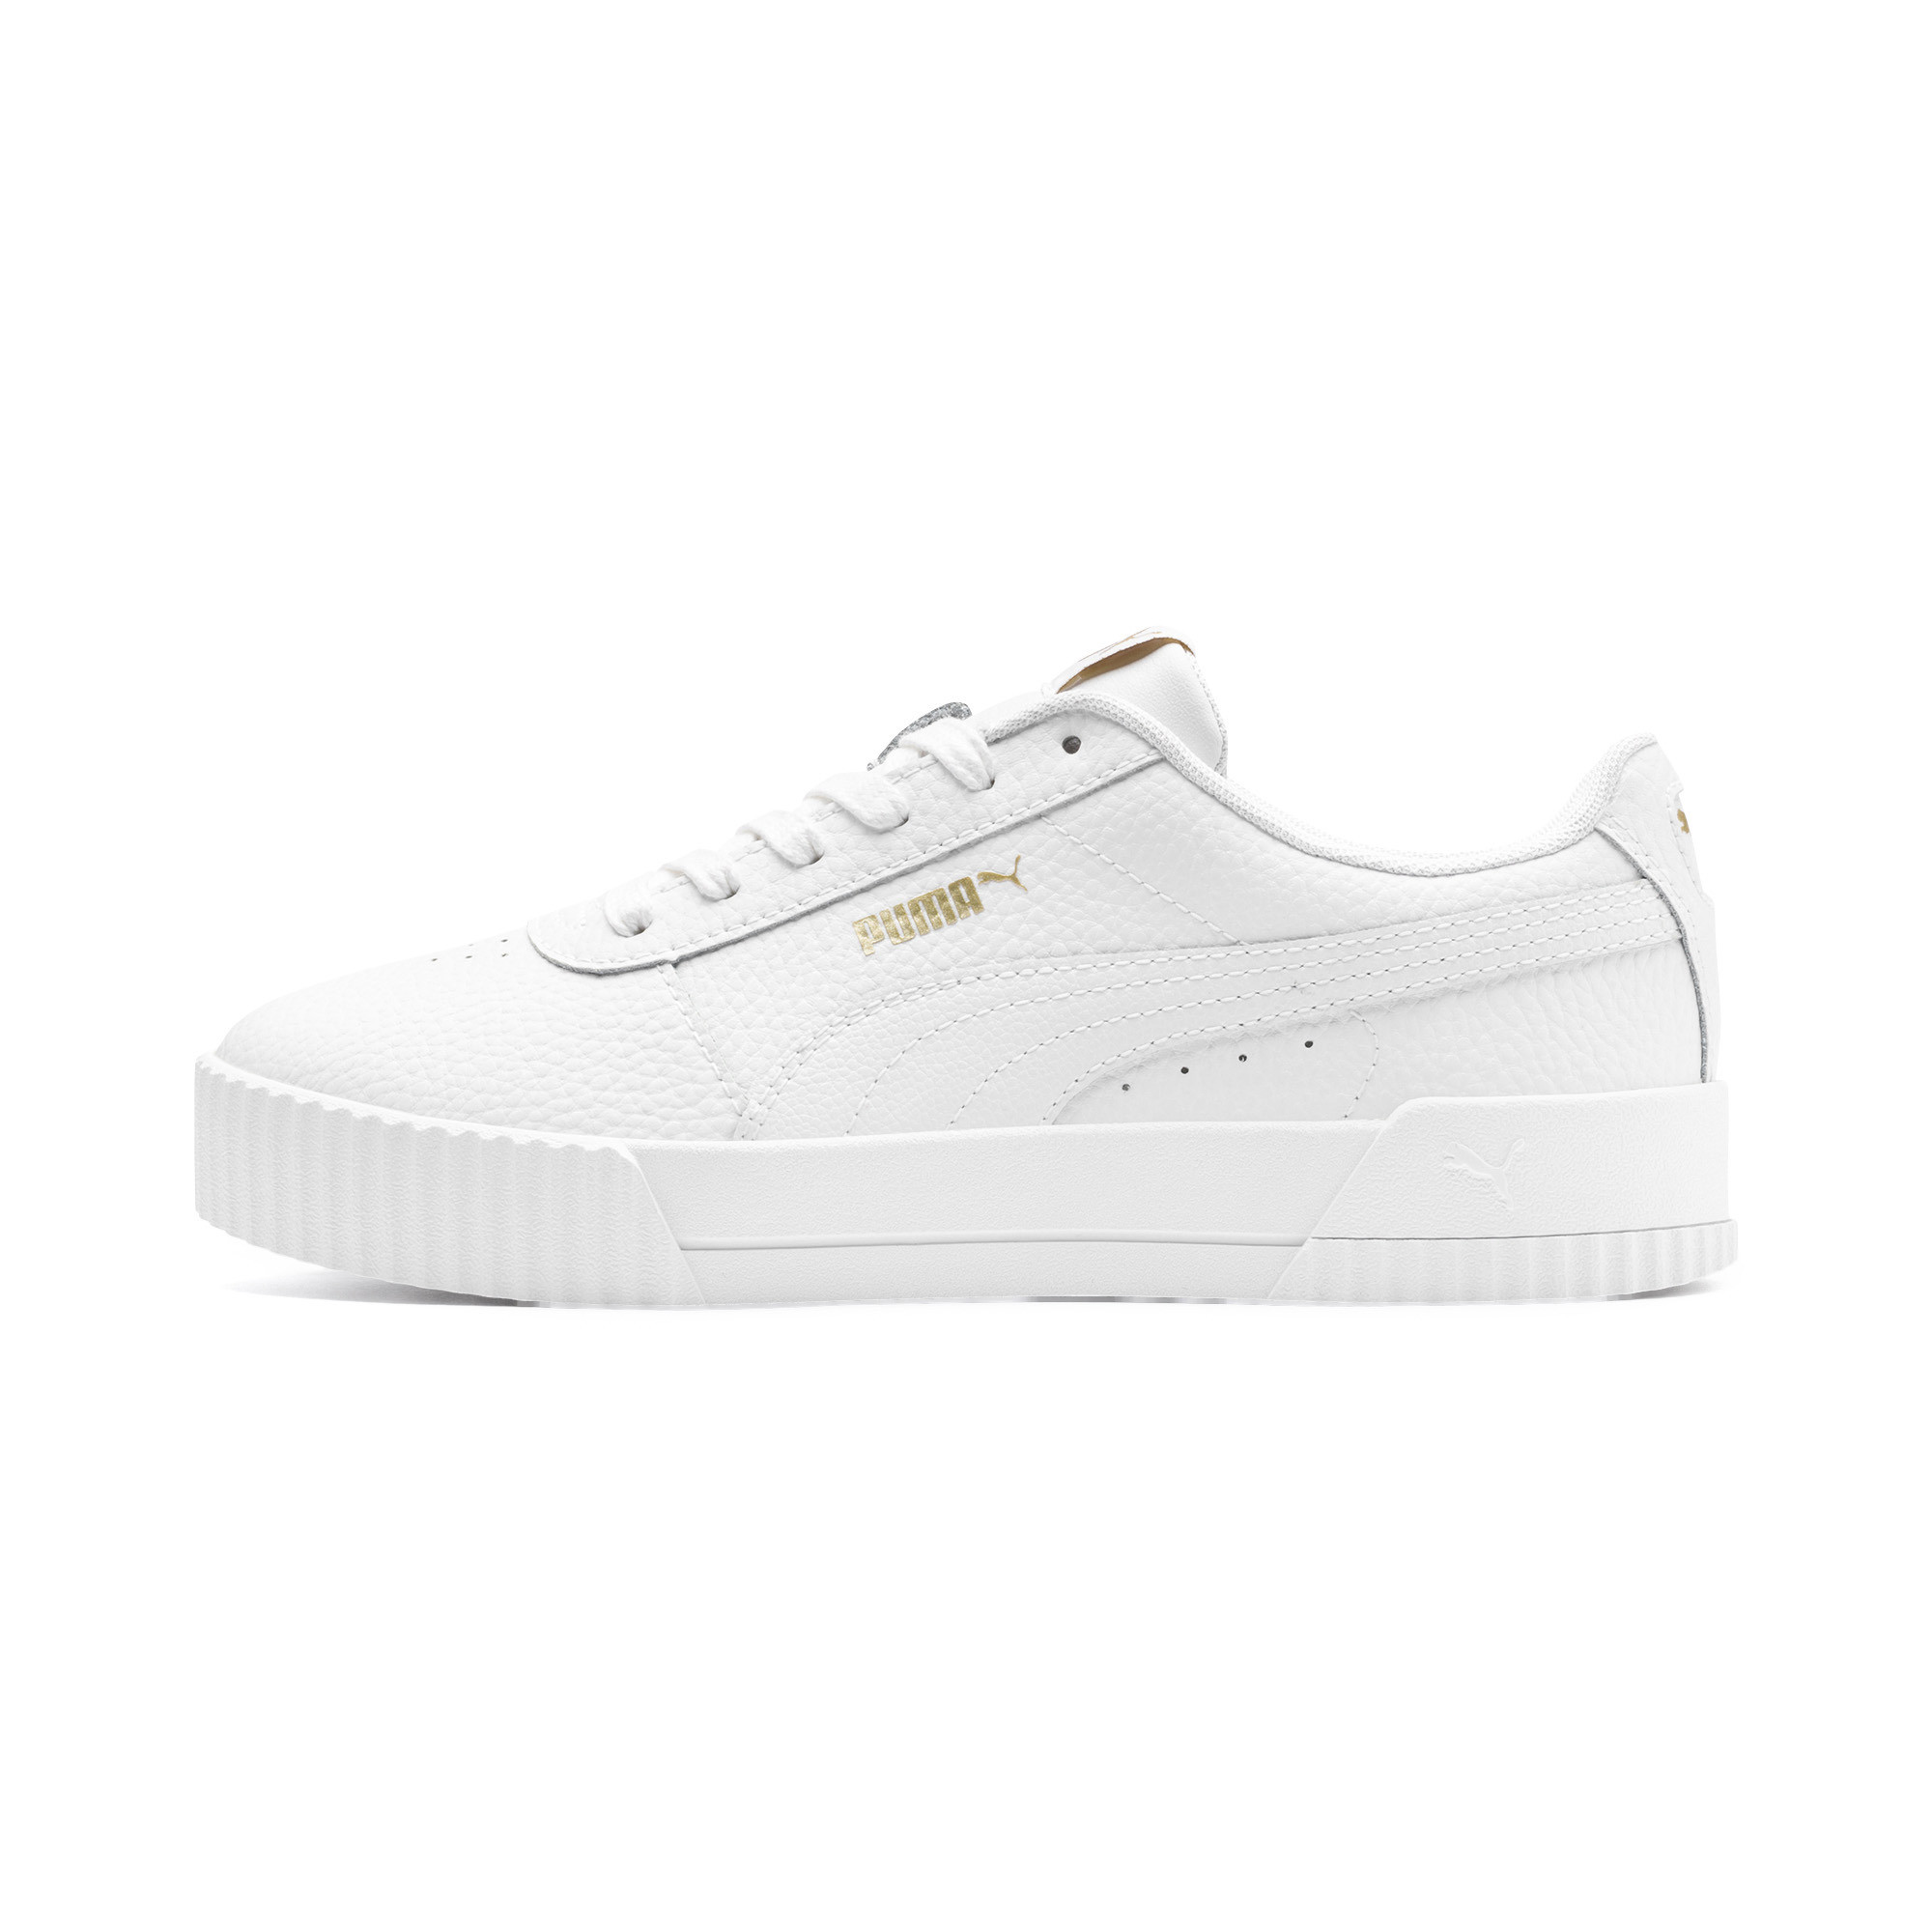 PUMA-Women-039-s-Carina-Lux-Leather-Sneakers thumbnail 4